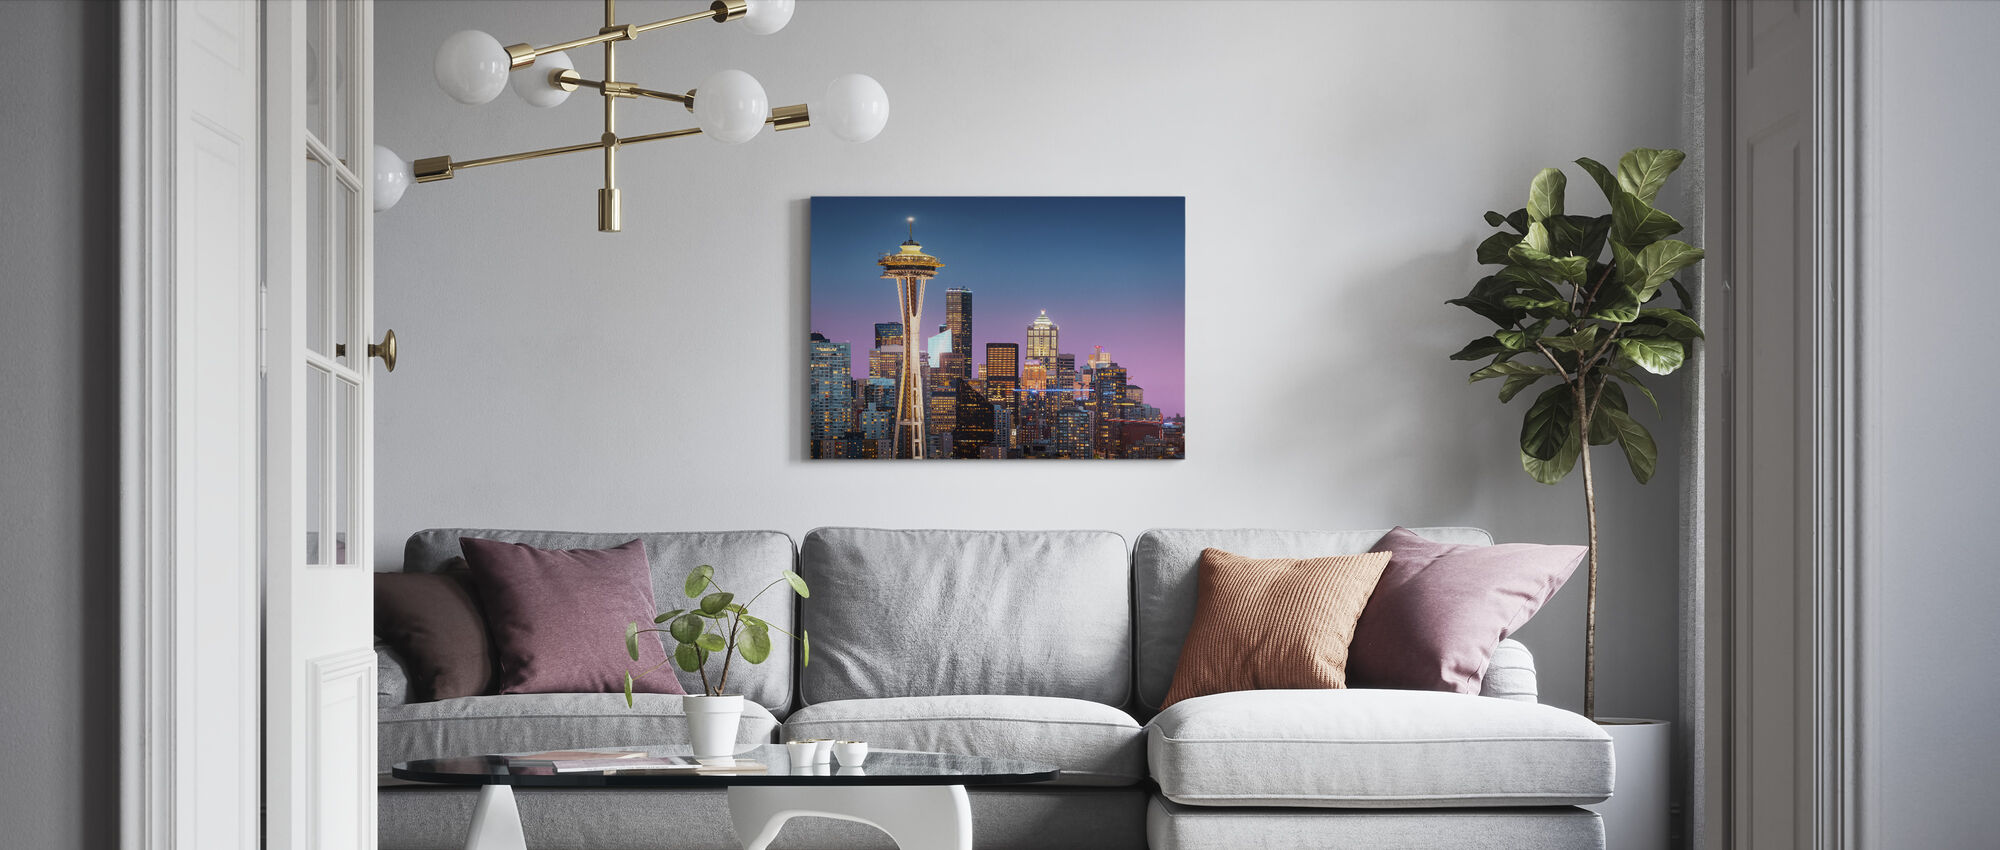 Space Needle - Canvas print - Living Room